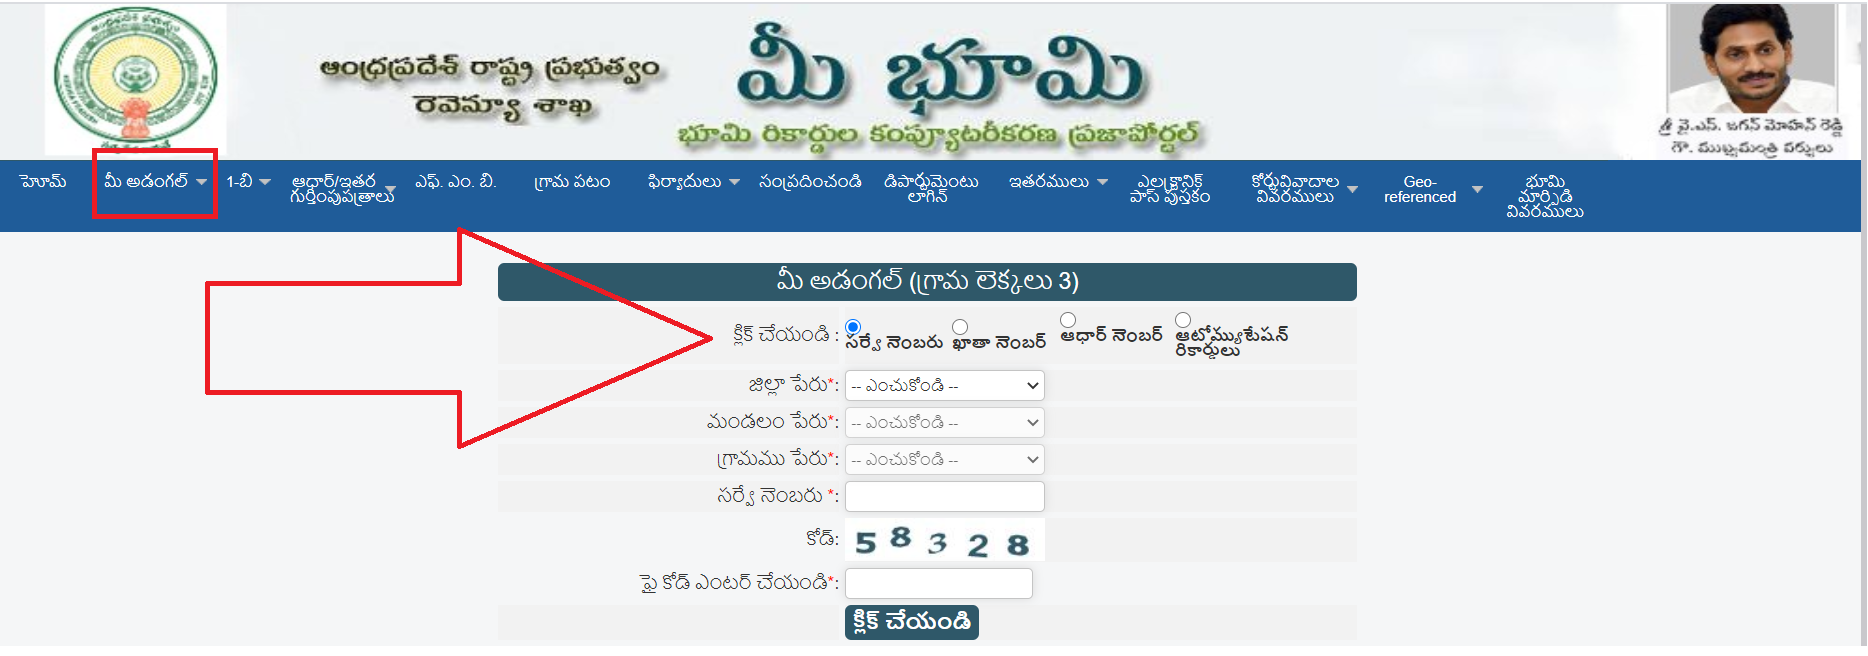 AP Mee Bhoomi Land Records Download Process